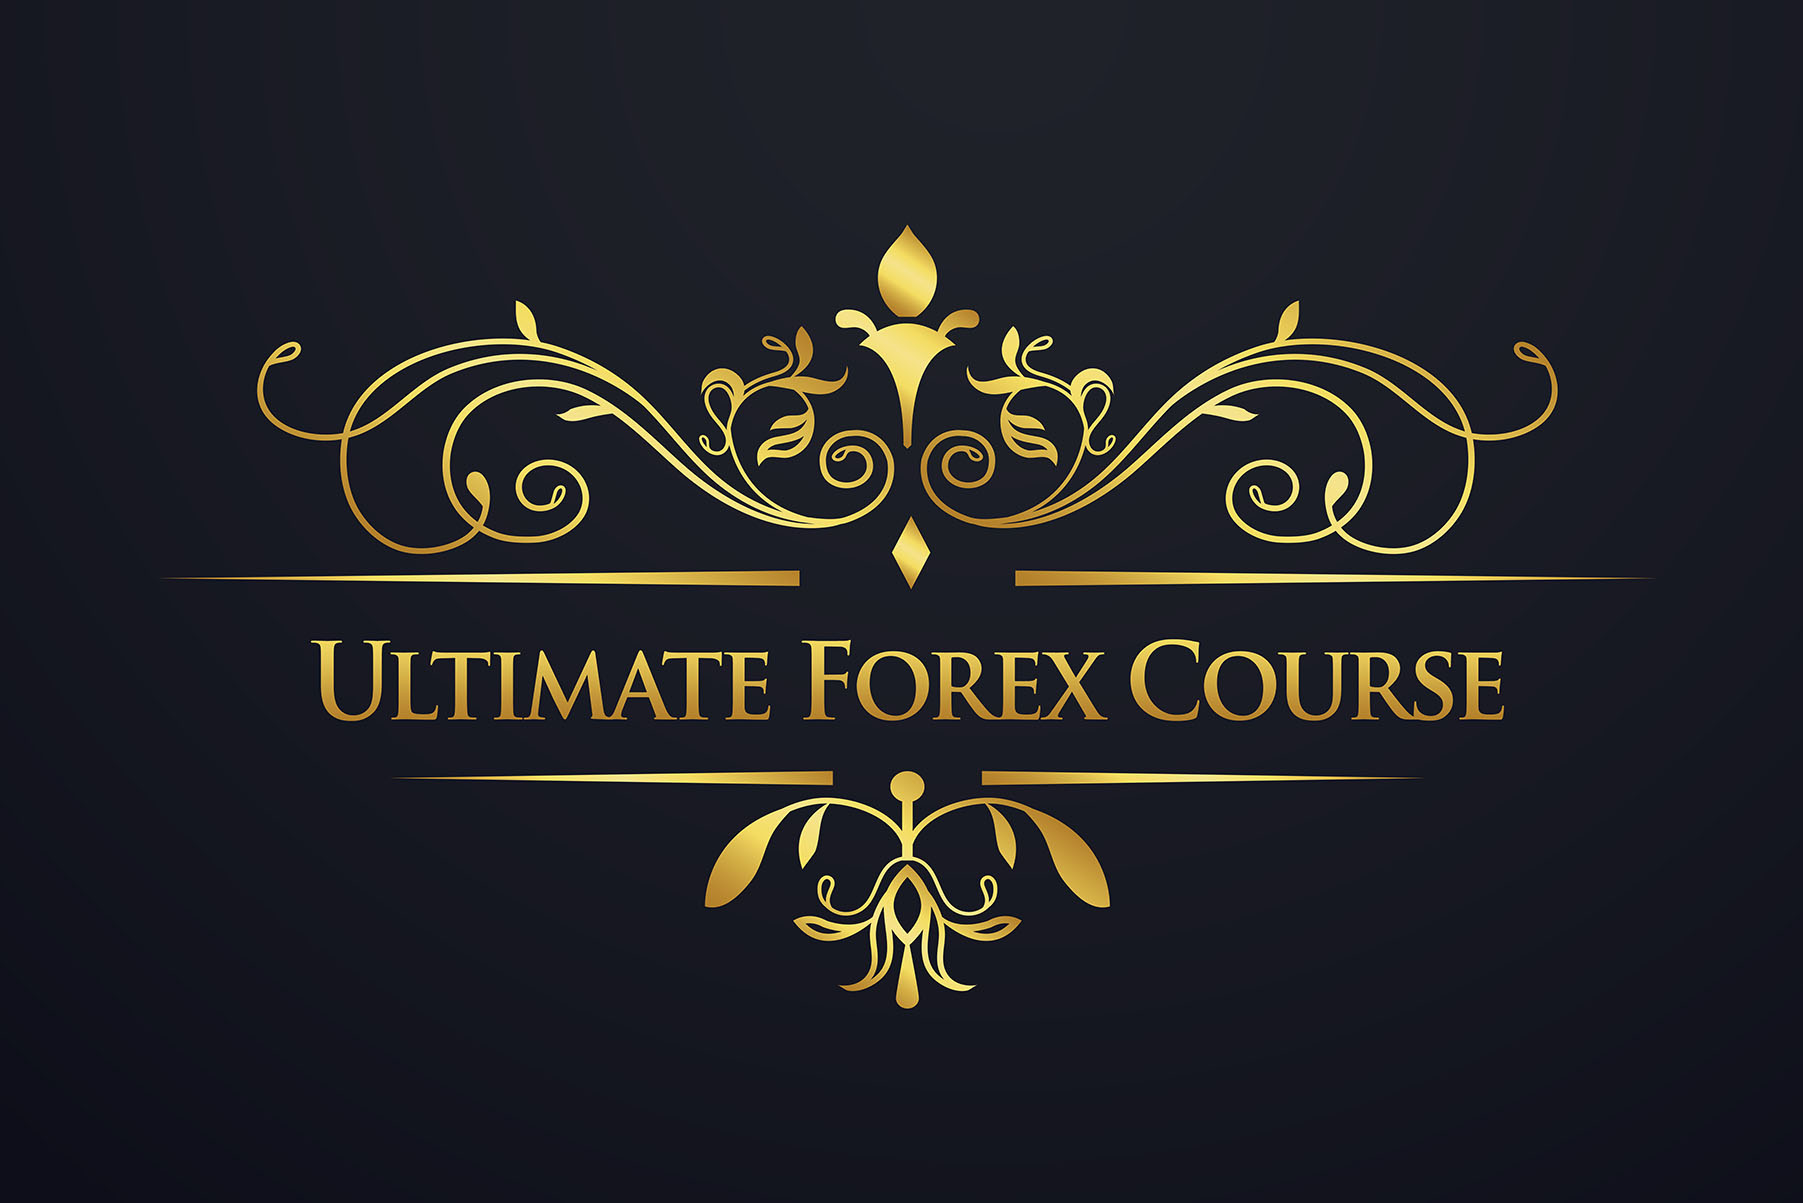 More about The Ultimate Forex Trading Course